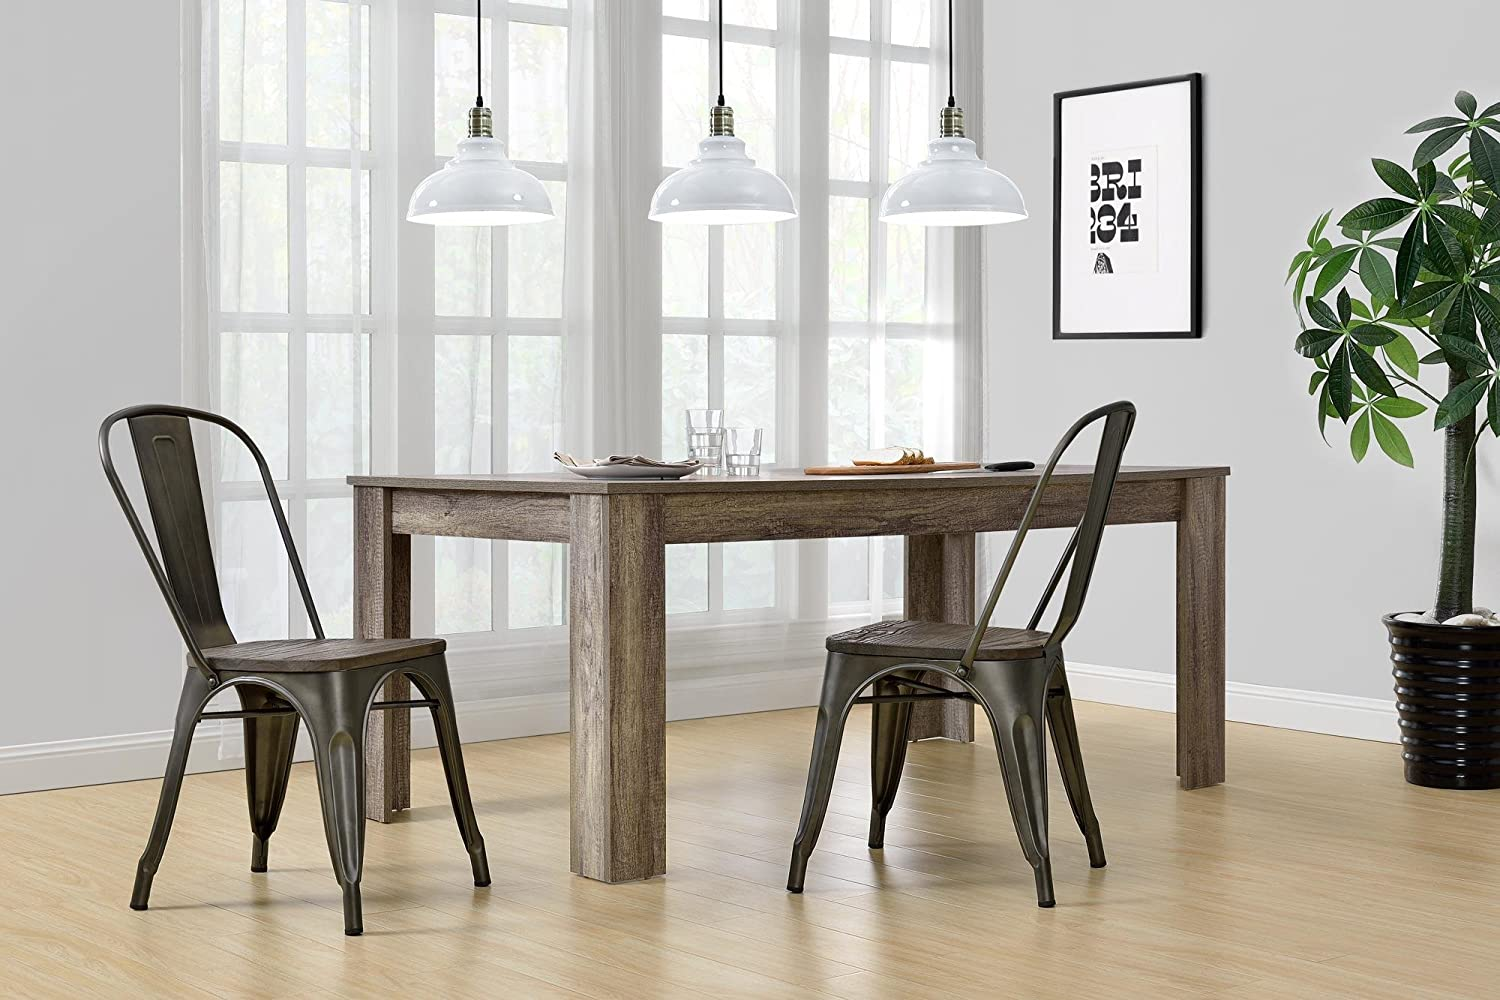 Genial Amazon.com   DHP Fusion Metal Dining Chair With Wood Seat, Set Of Two,  Antique Copper   Chairs